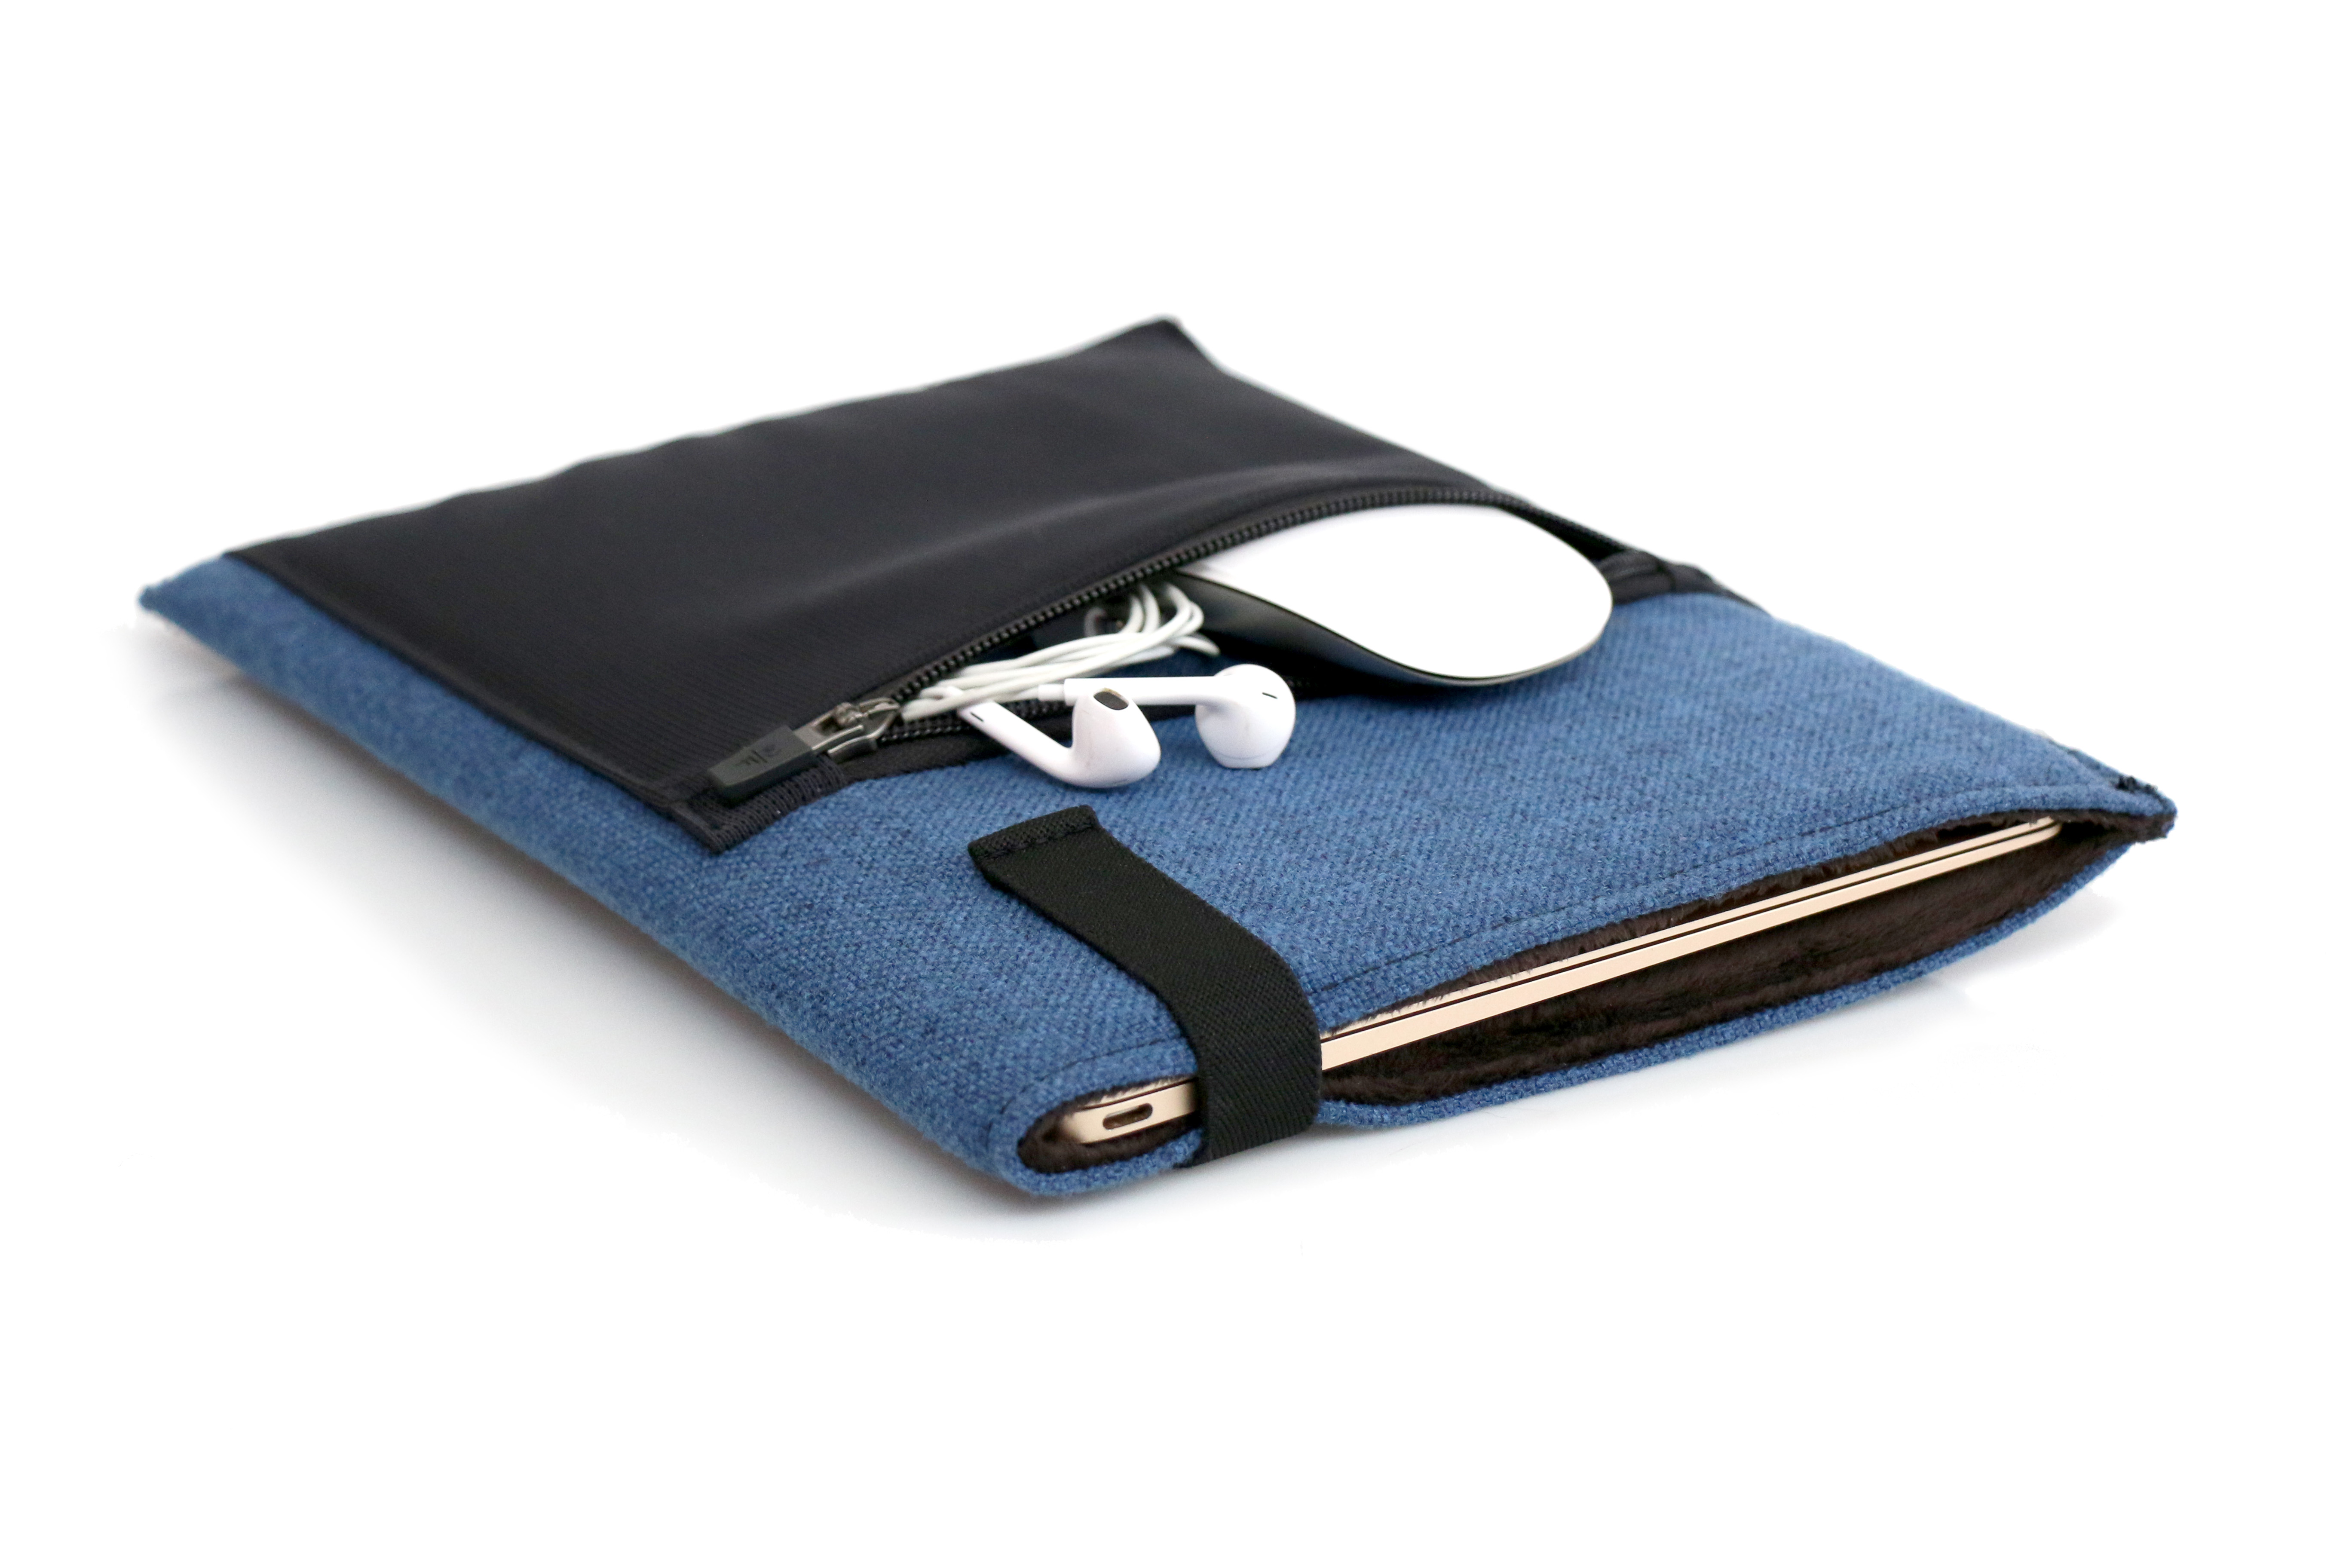 waterfield upgrades ultra thin dash laptop sleeve for apple s new